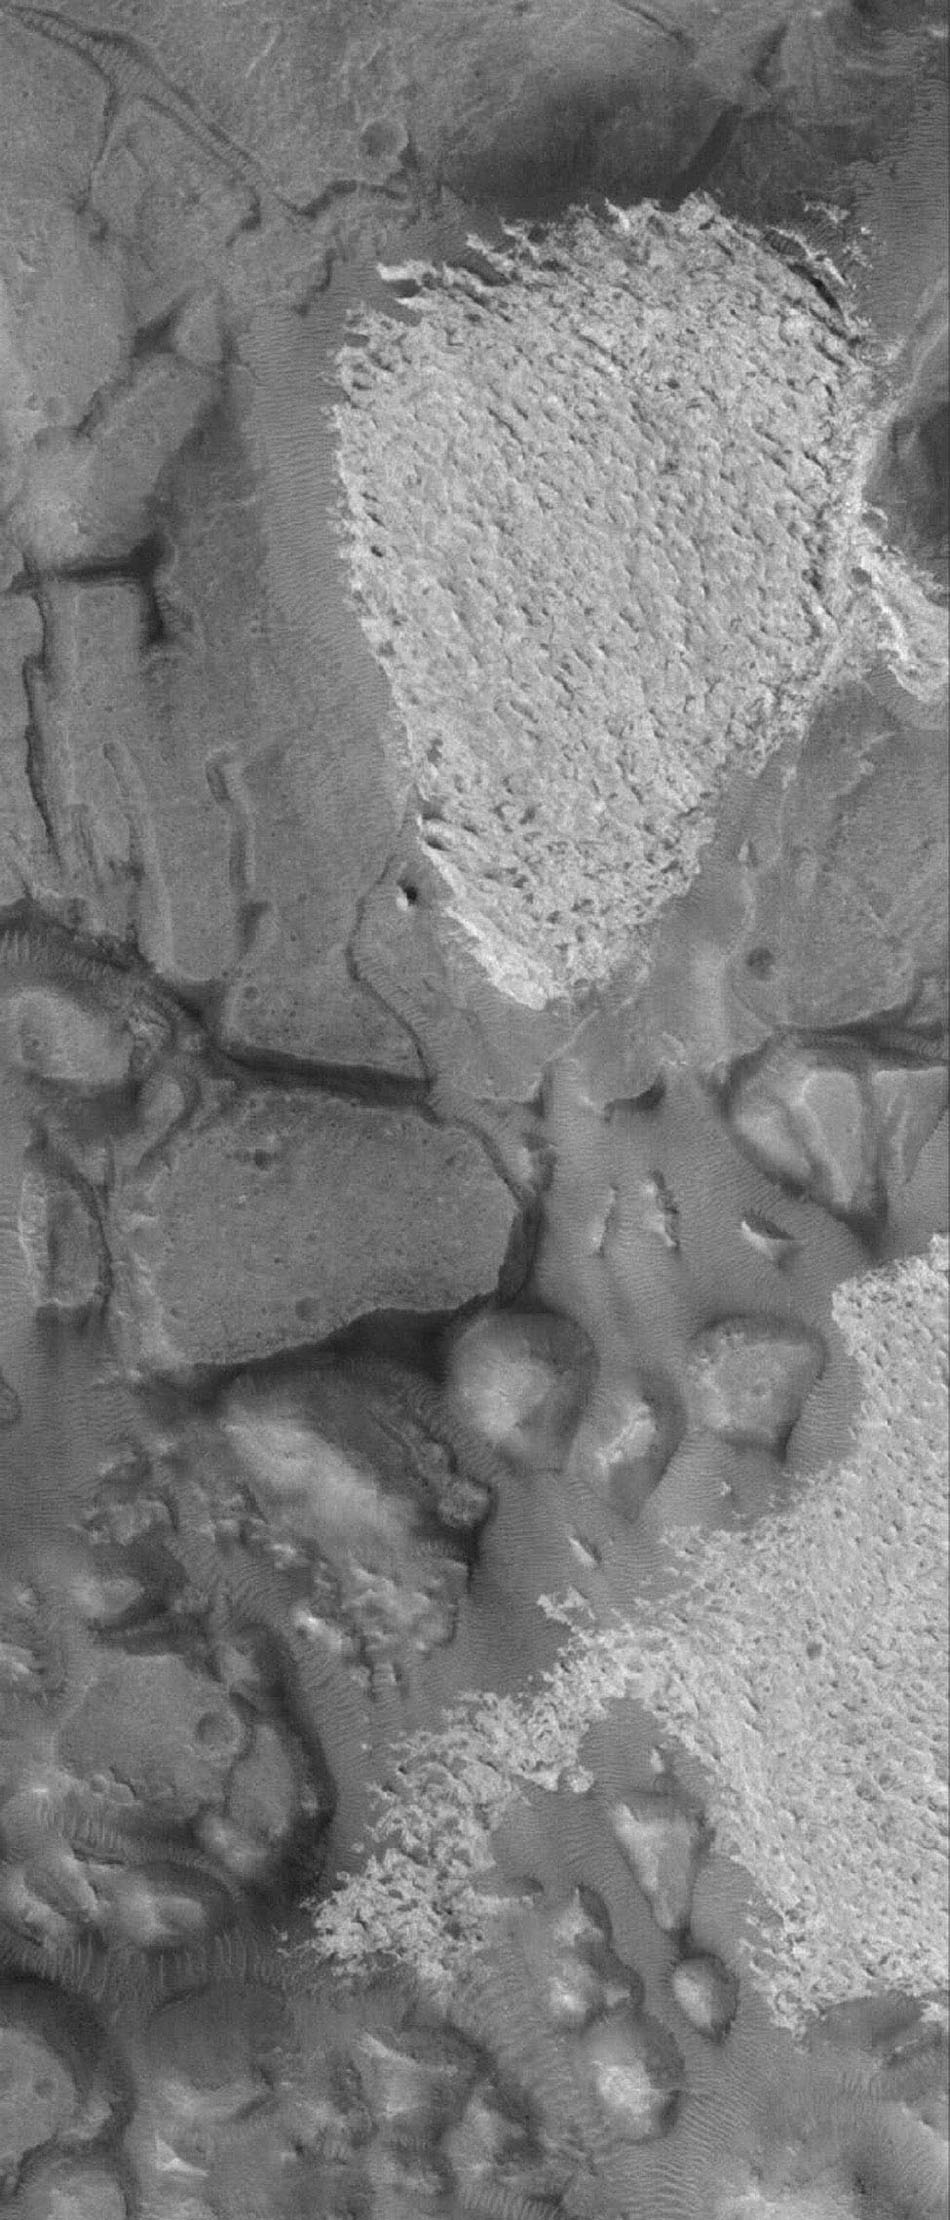 NASA's Mars Global Surveyor shows outcrops of light-toned, sedimentary rock among darker-toned mesas in Aram Chaos on Mars. Dark, windblown megaripples -- large ripples -- are also present at this location.